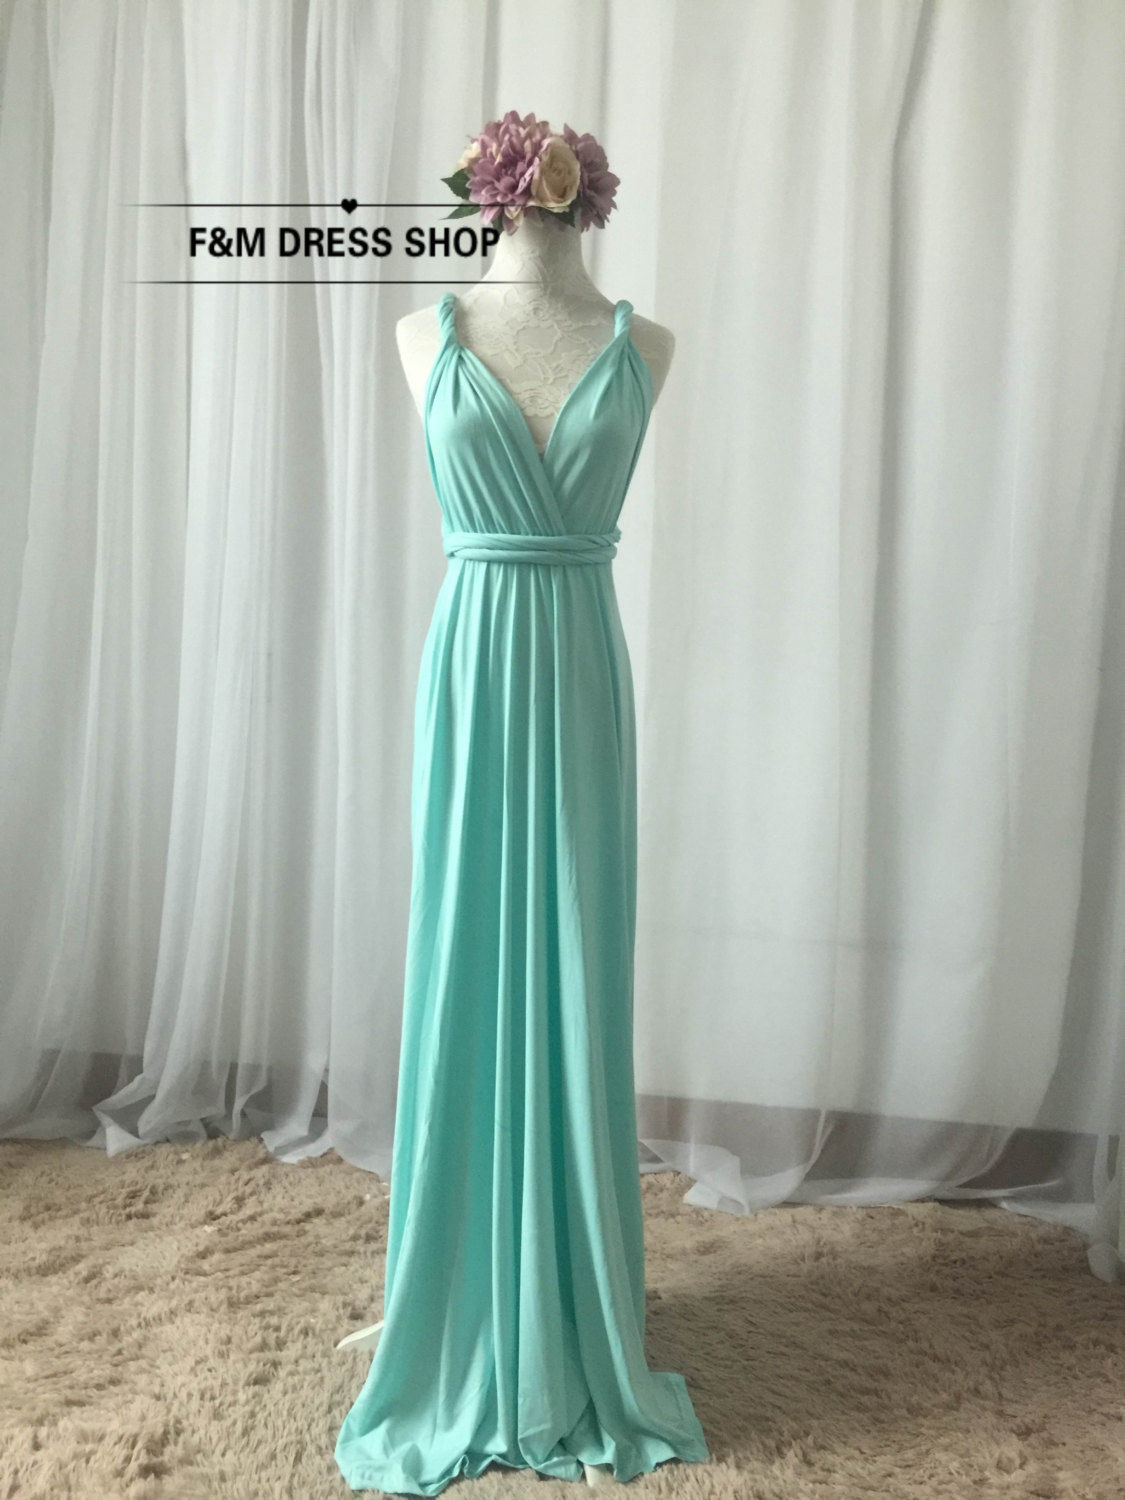 66a4eb1b6d0 Bridesmaid Dress Infinity Dress Light Baby Mint Blue Floor Length Wrap Convertible  Dress Wedding Dress